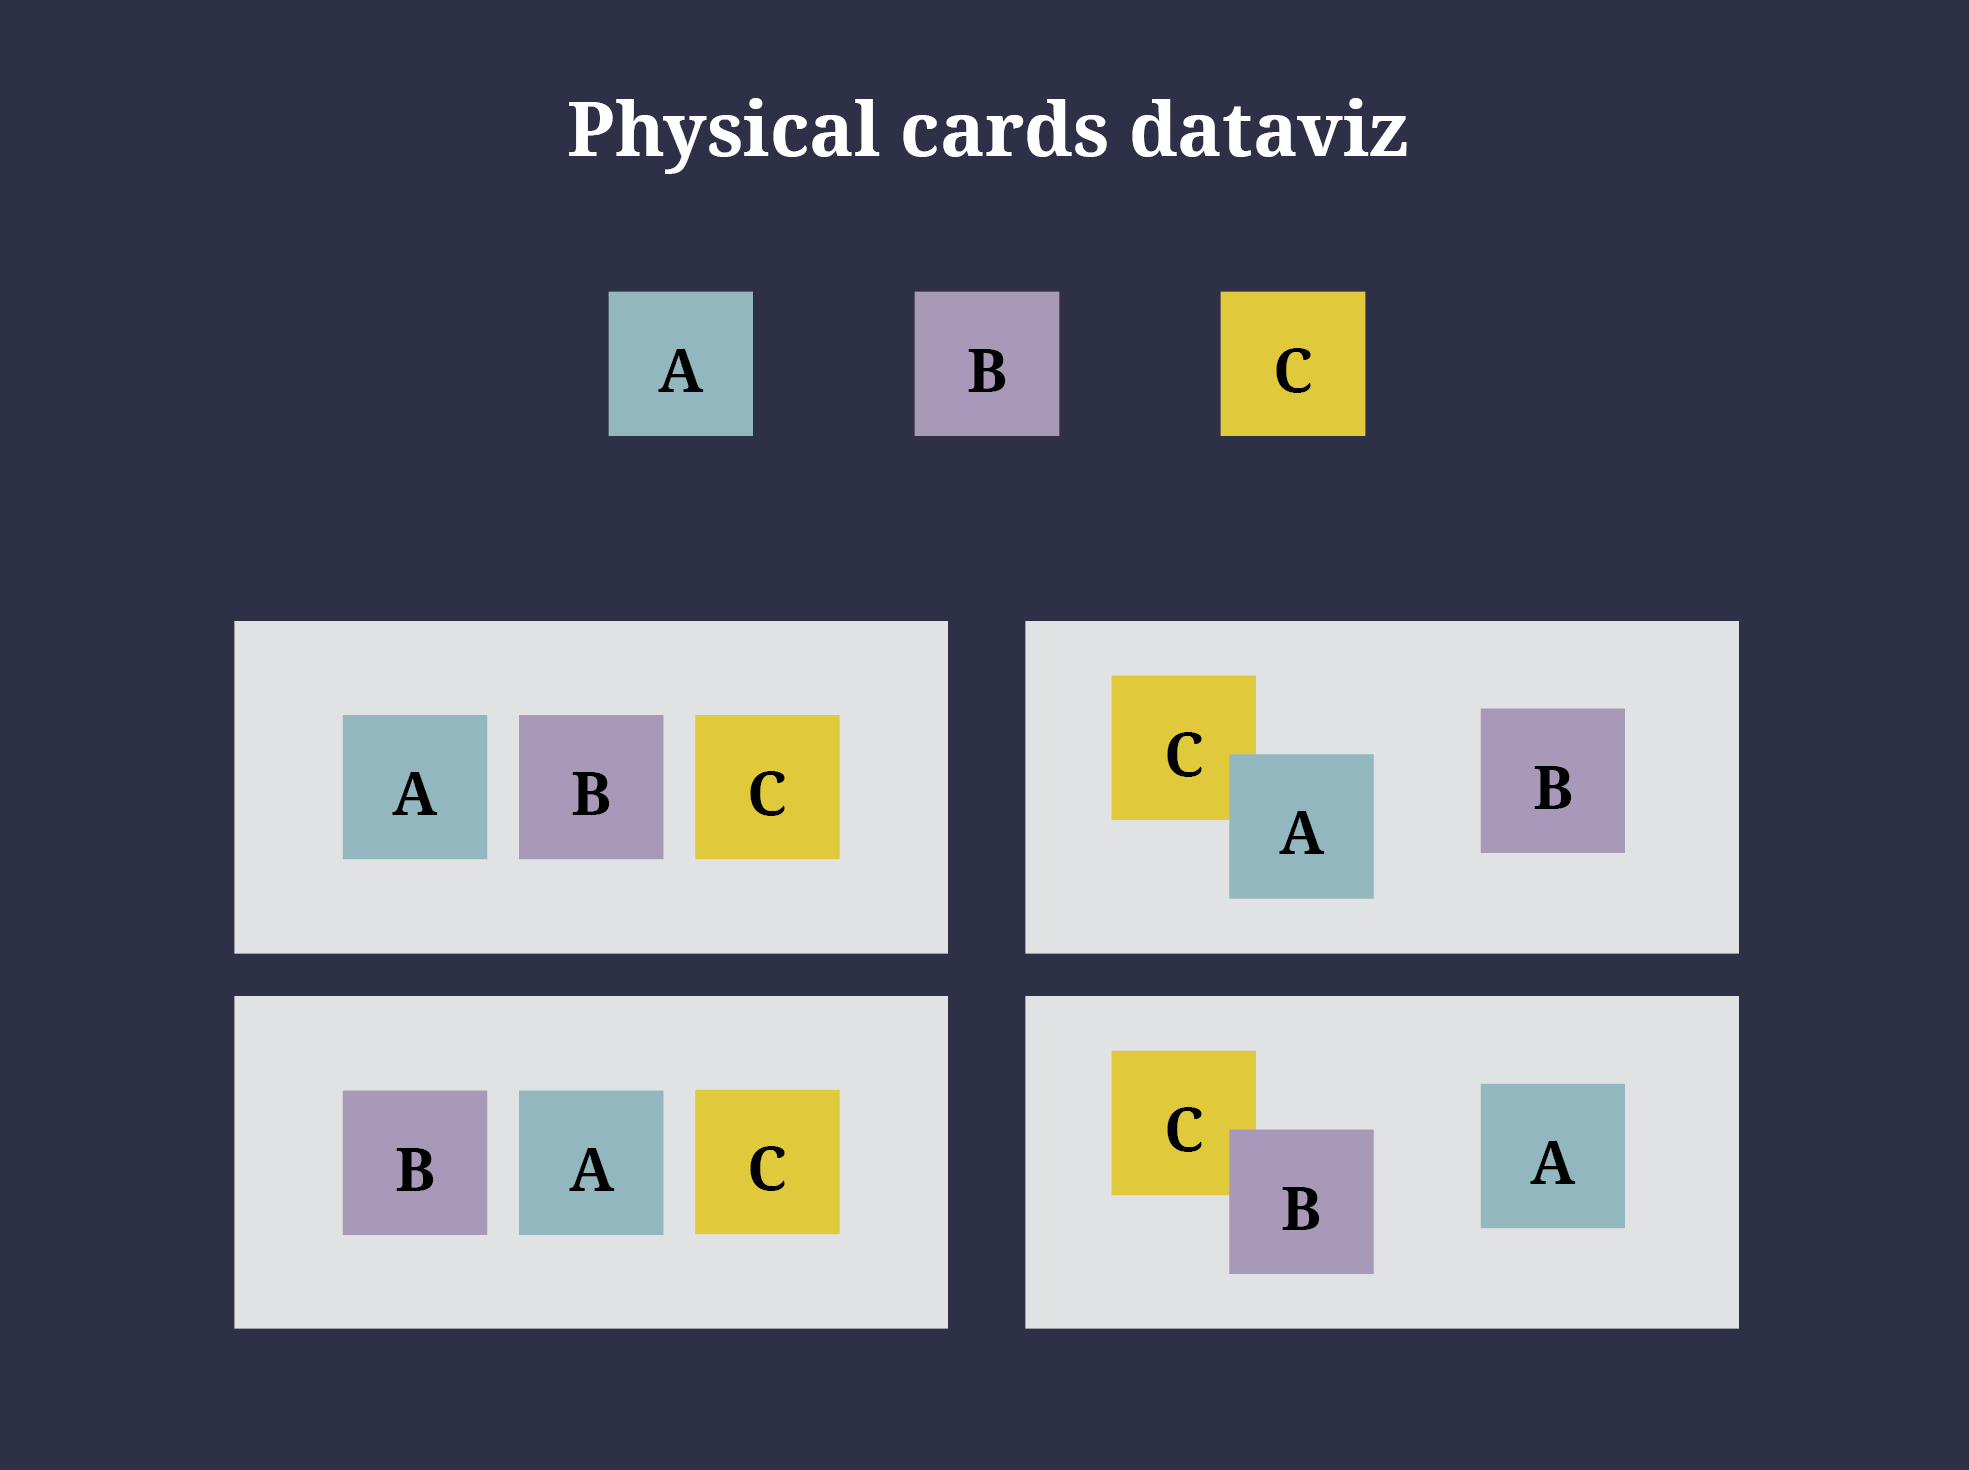 Physical cards dataviz has no order. A, B, C and be arranged in any way.